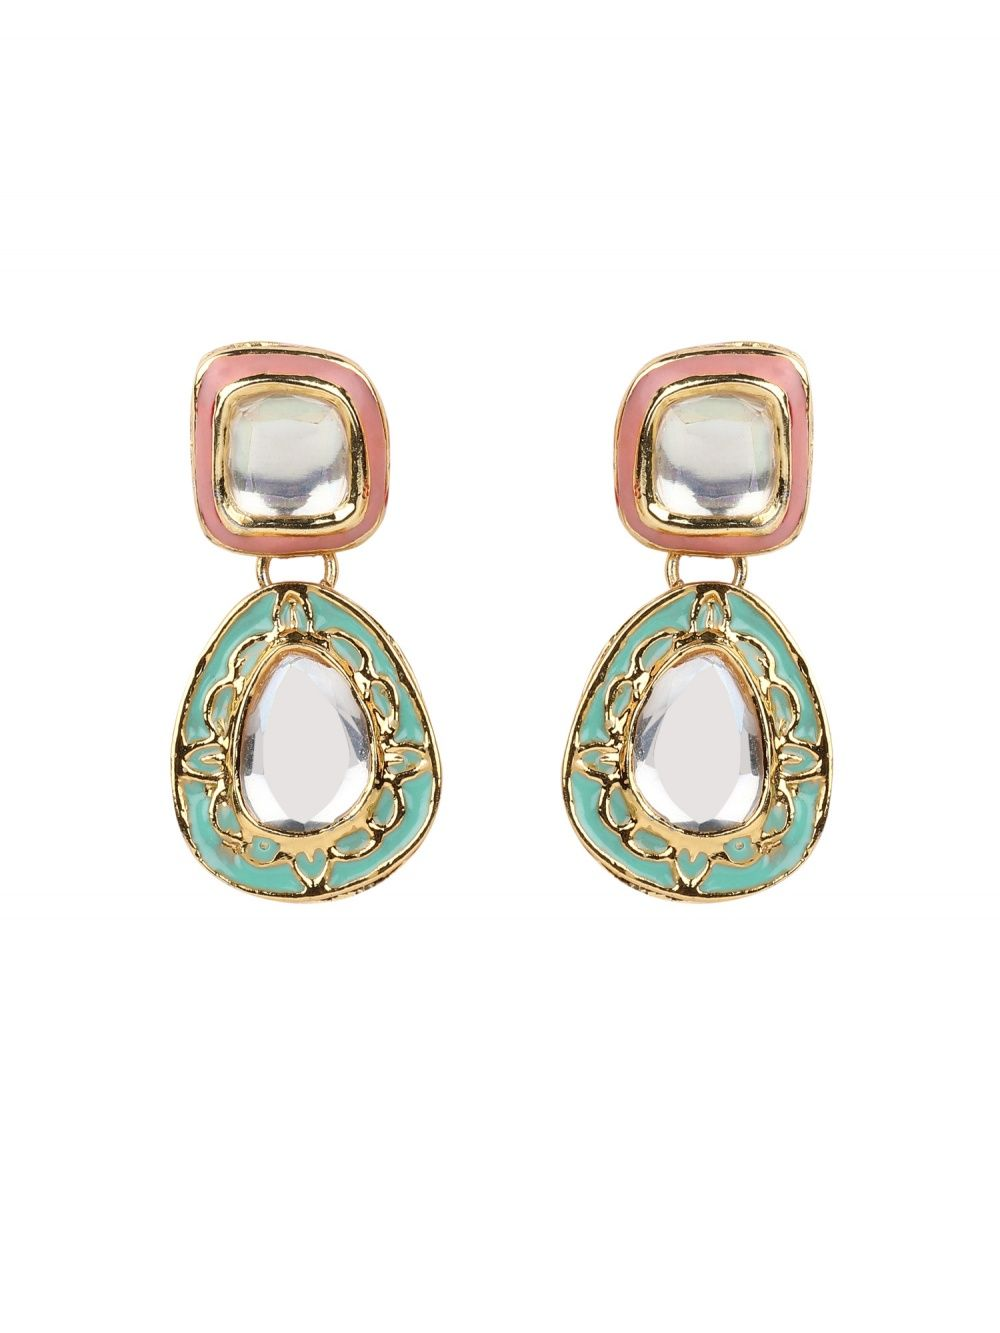 aba8c32b1 TAD Accessories Earrings : Buy TAD Accessories Pink And Blue ...